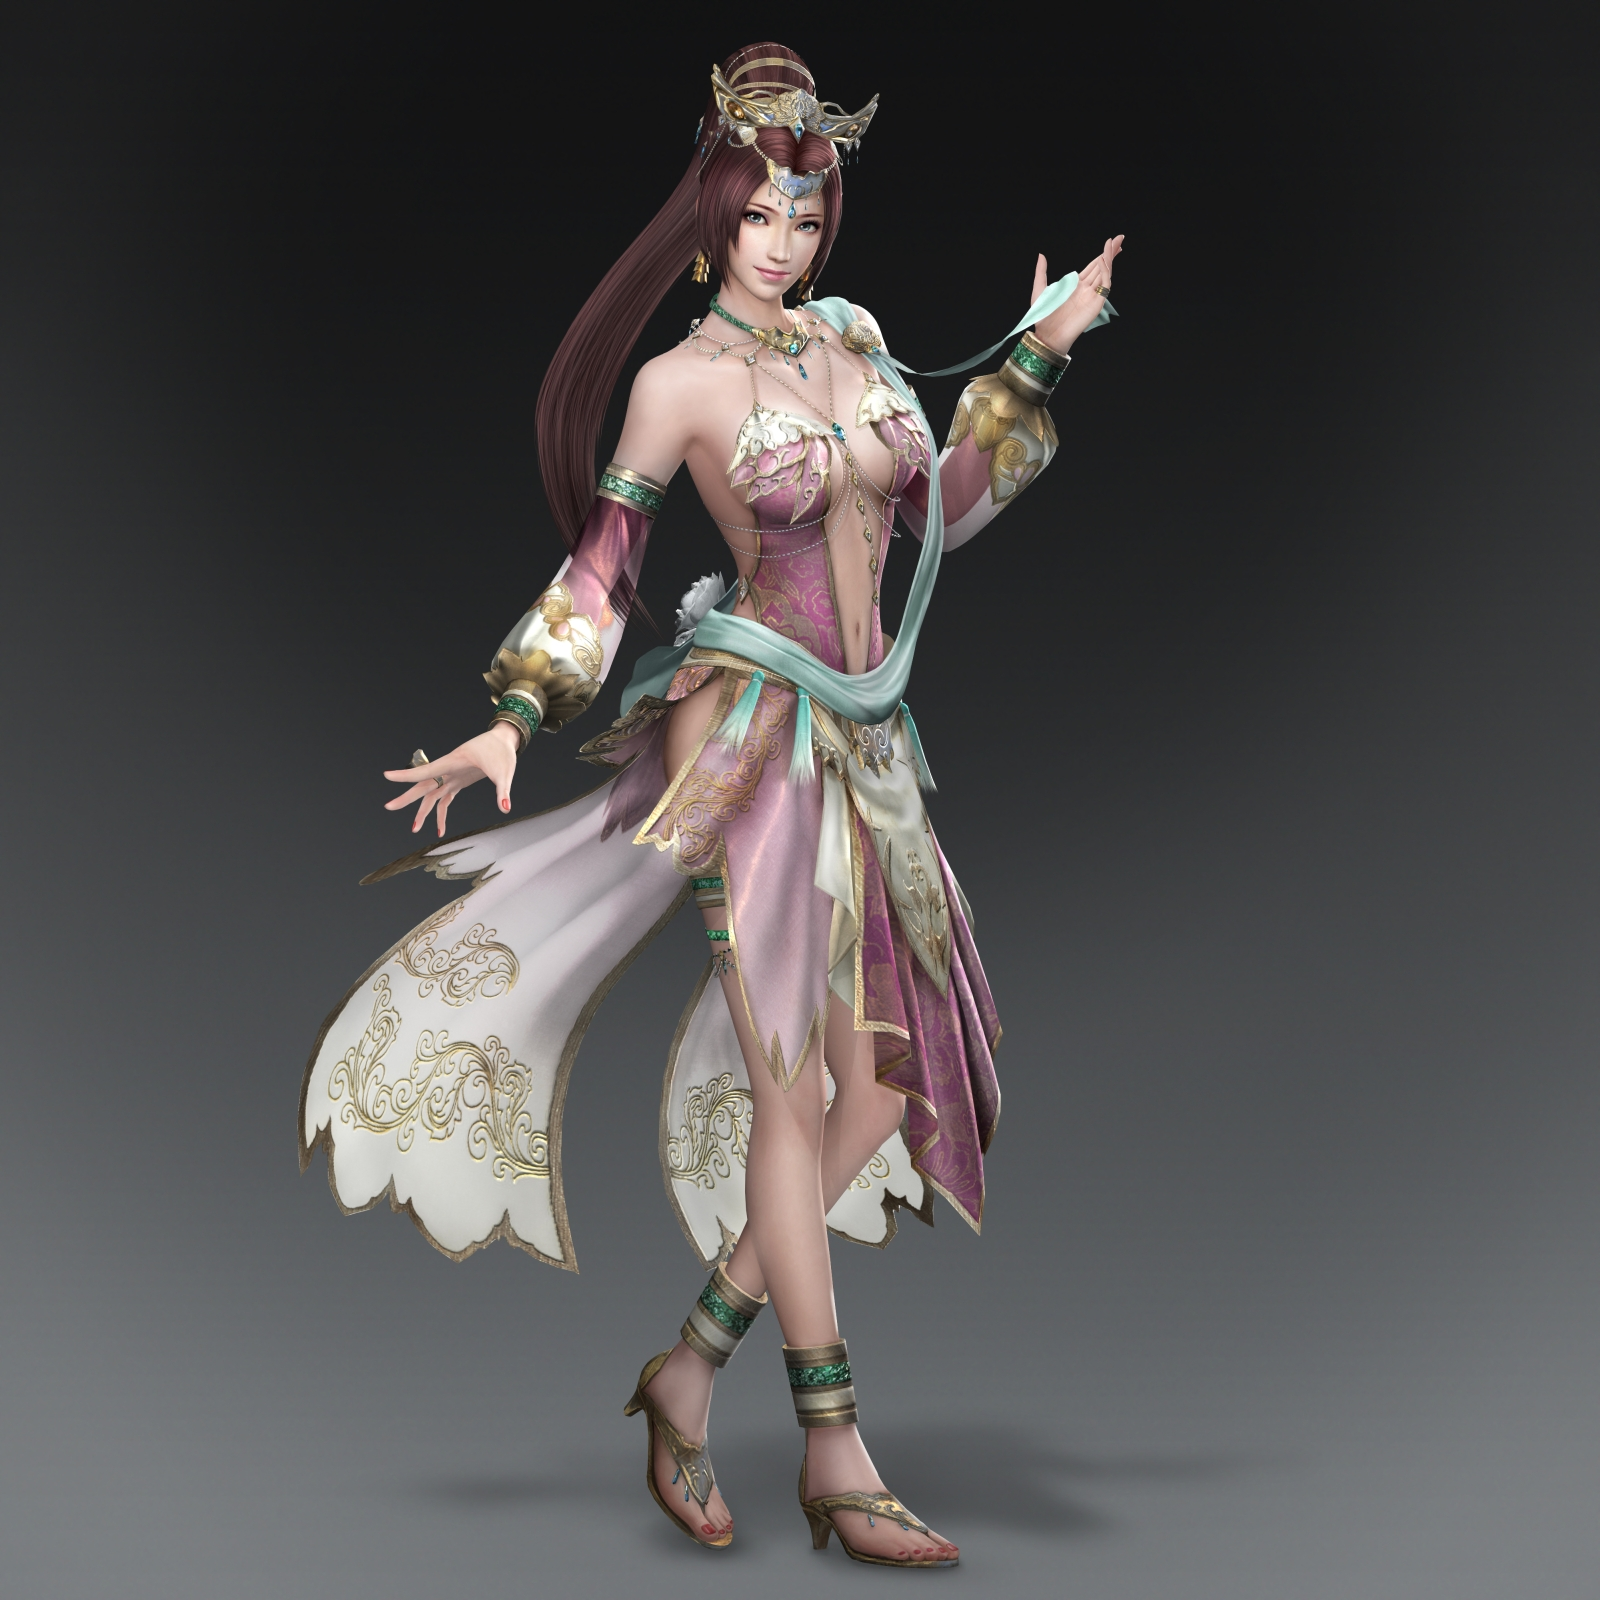 Dynasty warrior 8 extreme legend nude costume xxx picture